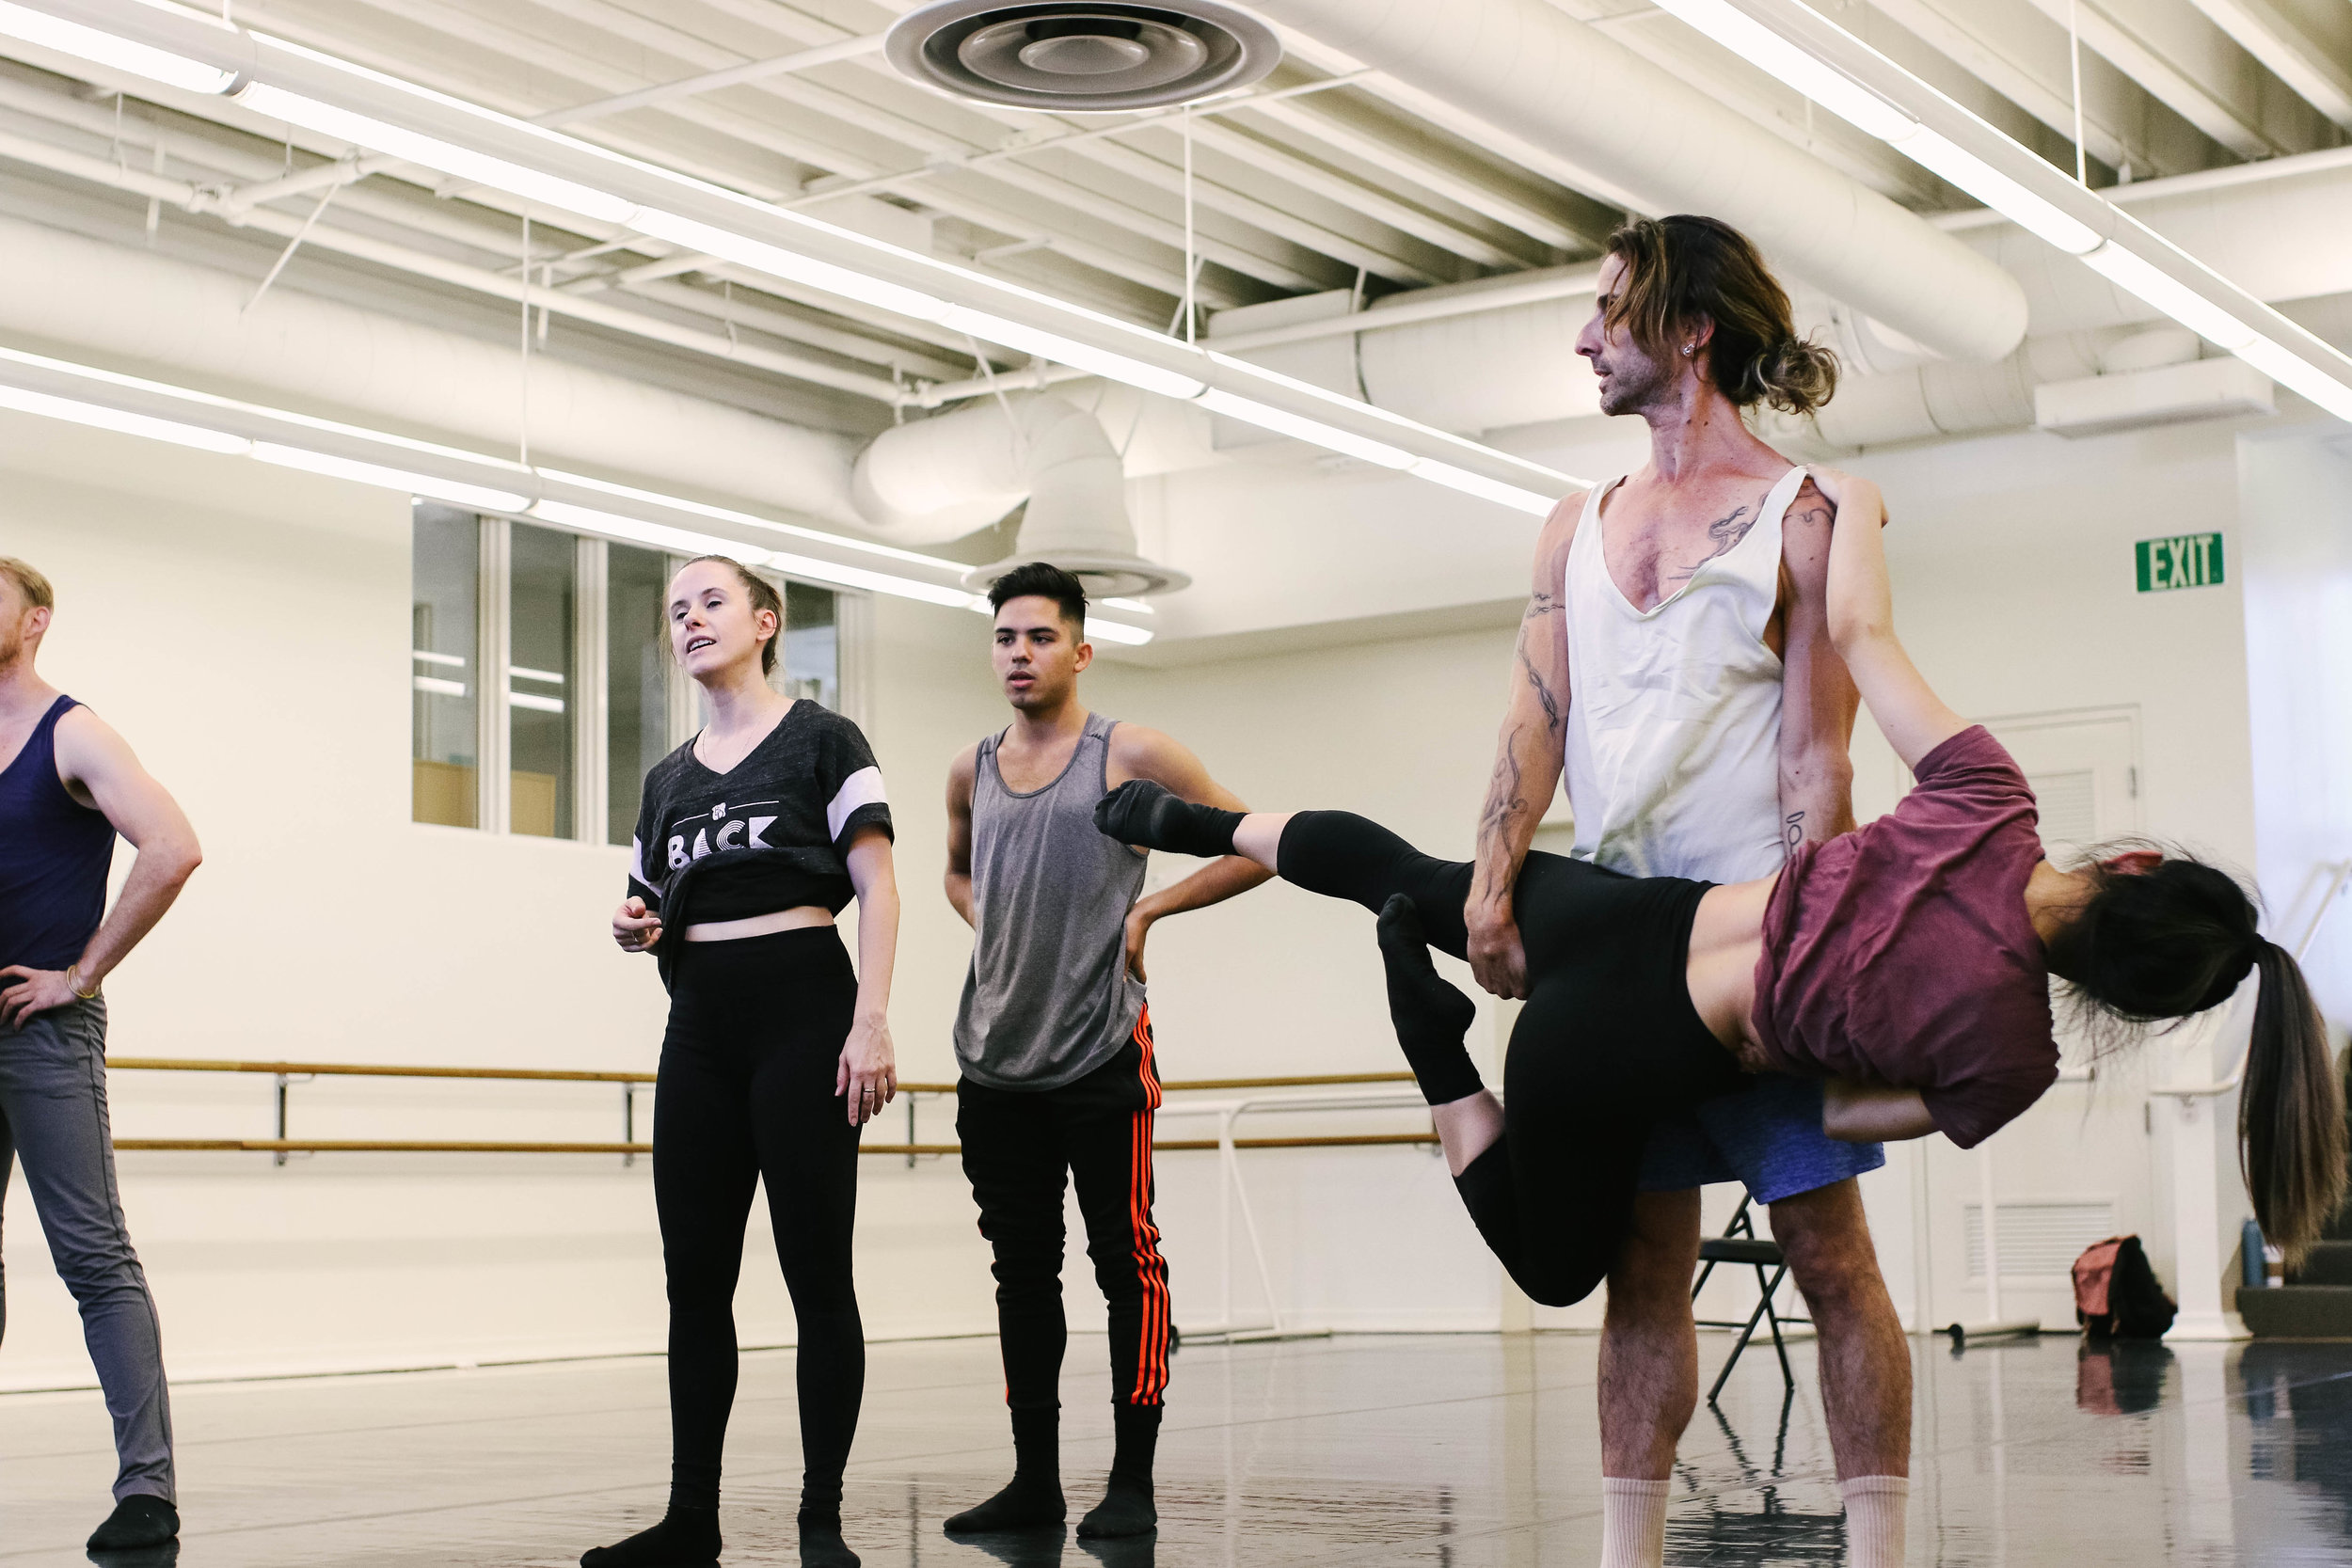 Israeli choreographer Ido Tadmor rehearsing  The Empty Room . The US premiere is scheduled for February 2017. Photo by Sarah Delgado.